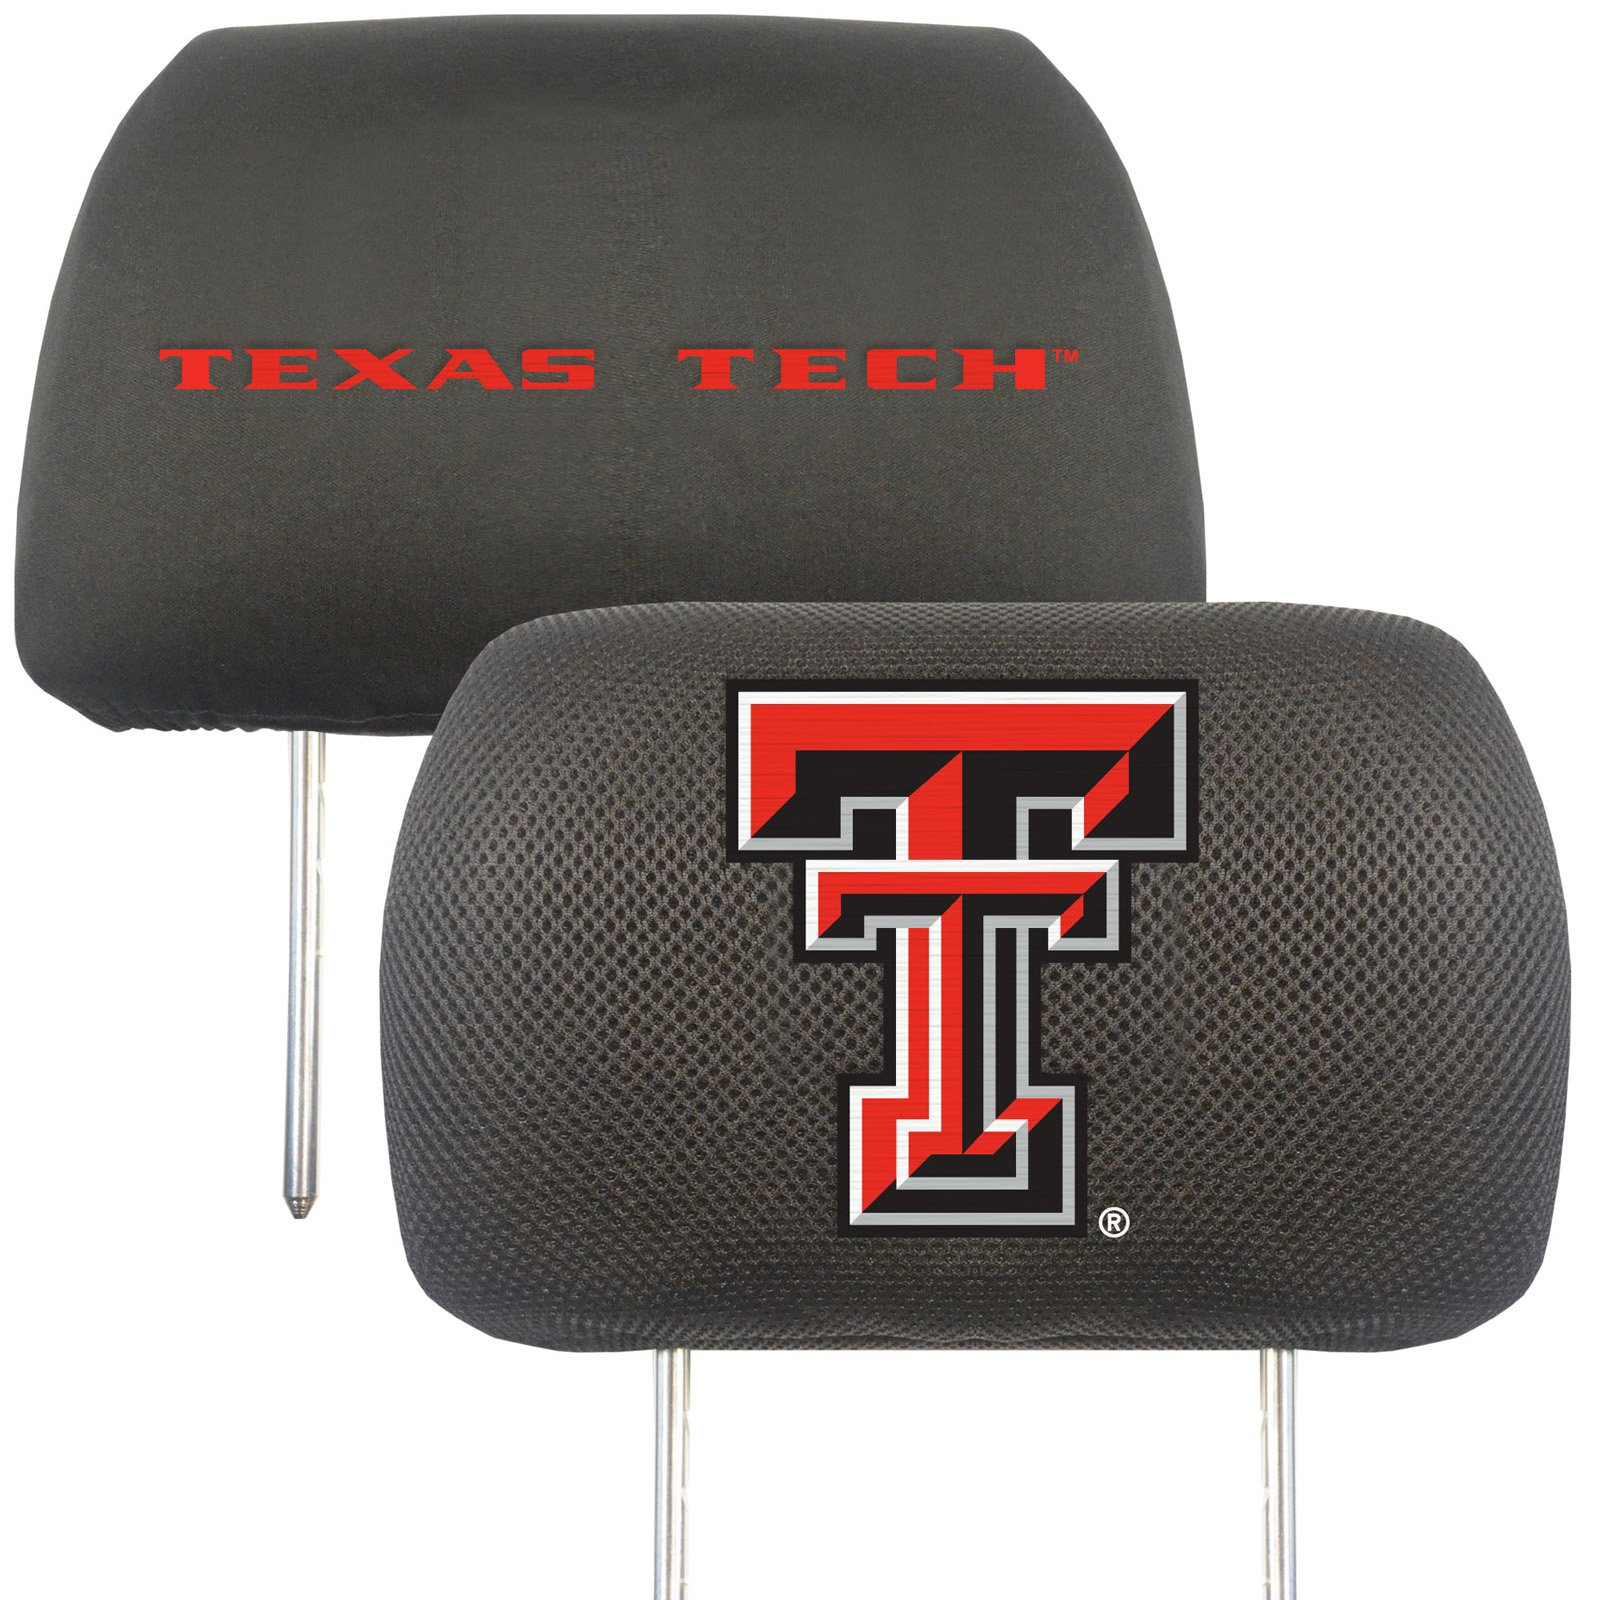 Texas Tech University Headrest Covers